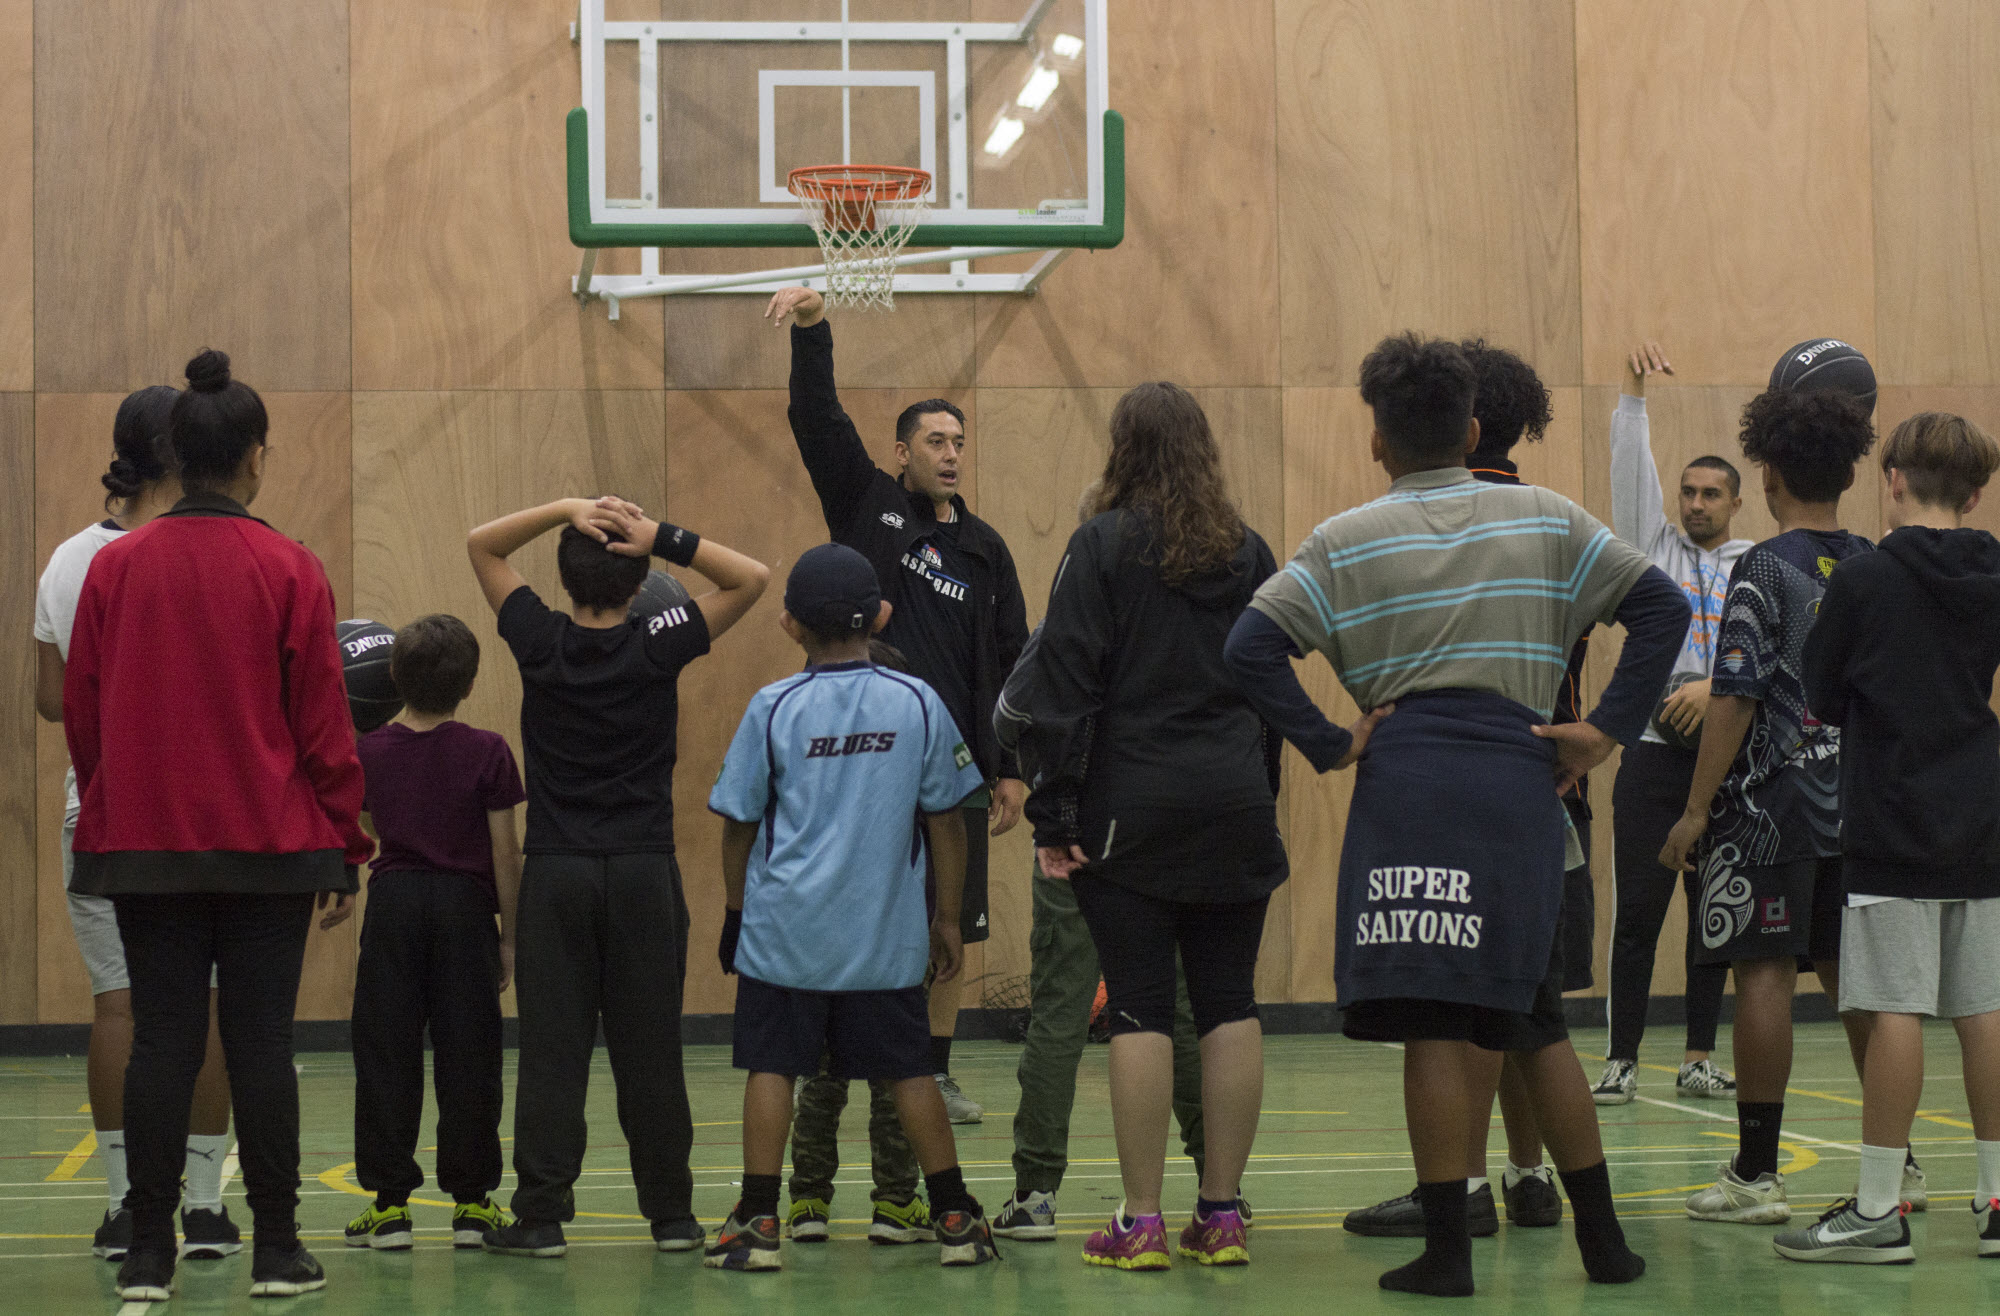 Children of different ages learning basketball